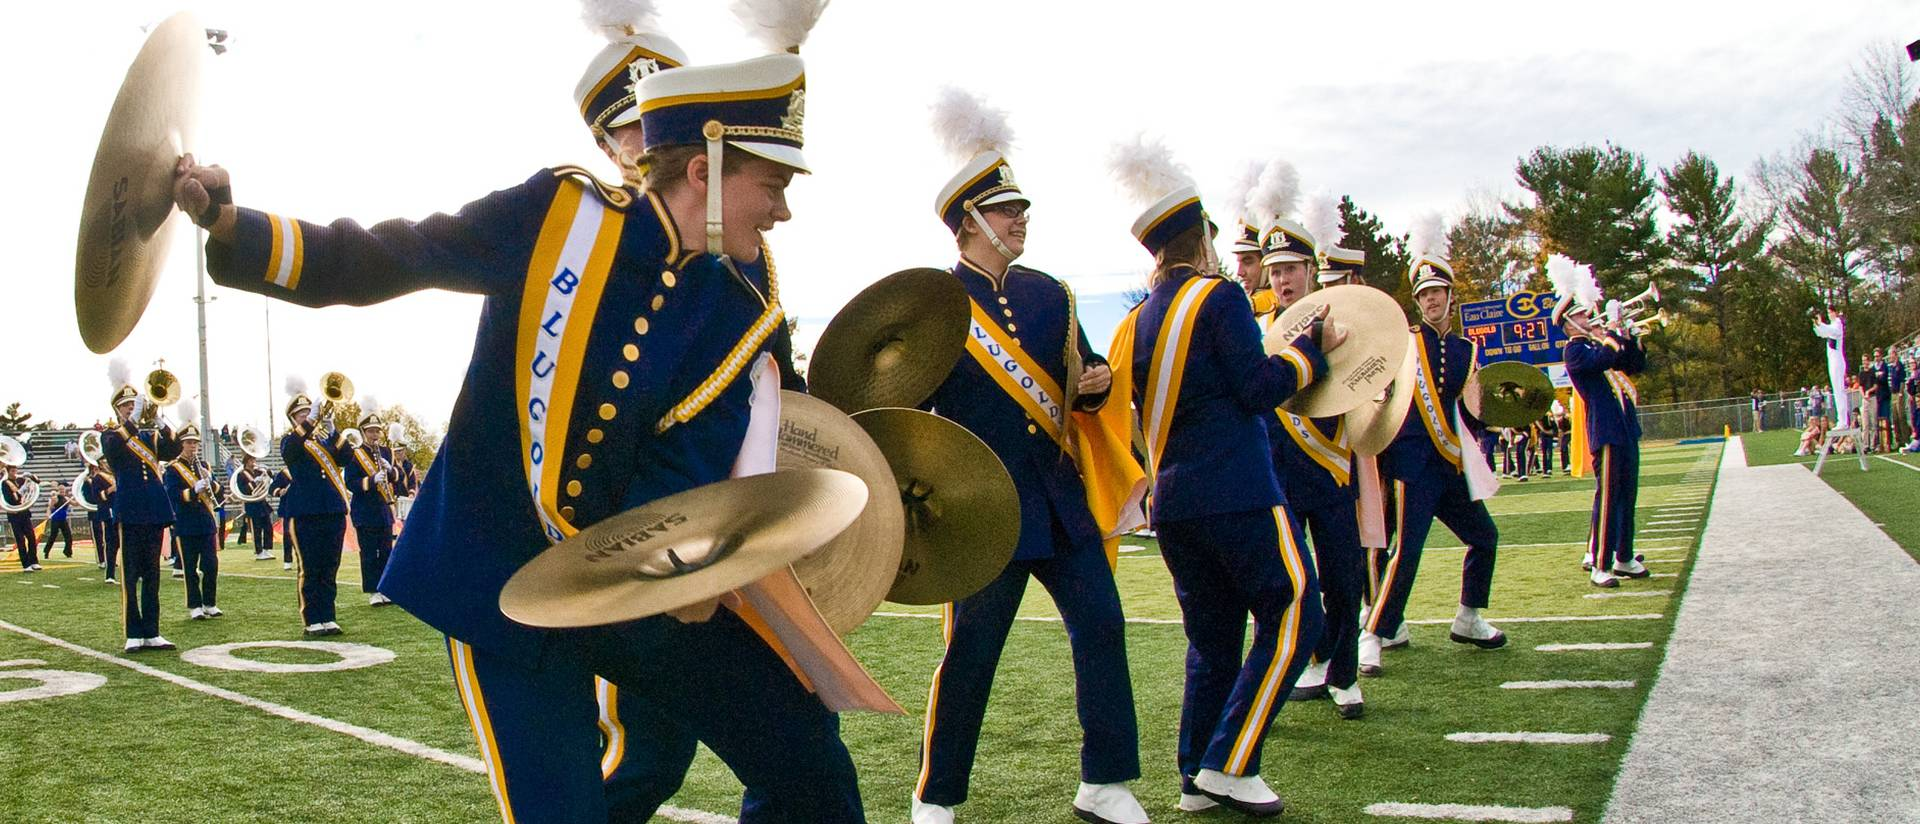 Blugold Marching Band cymbal section